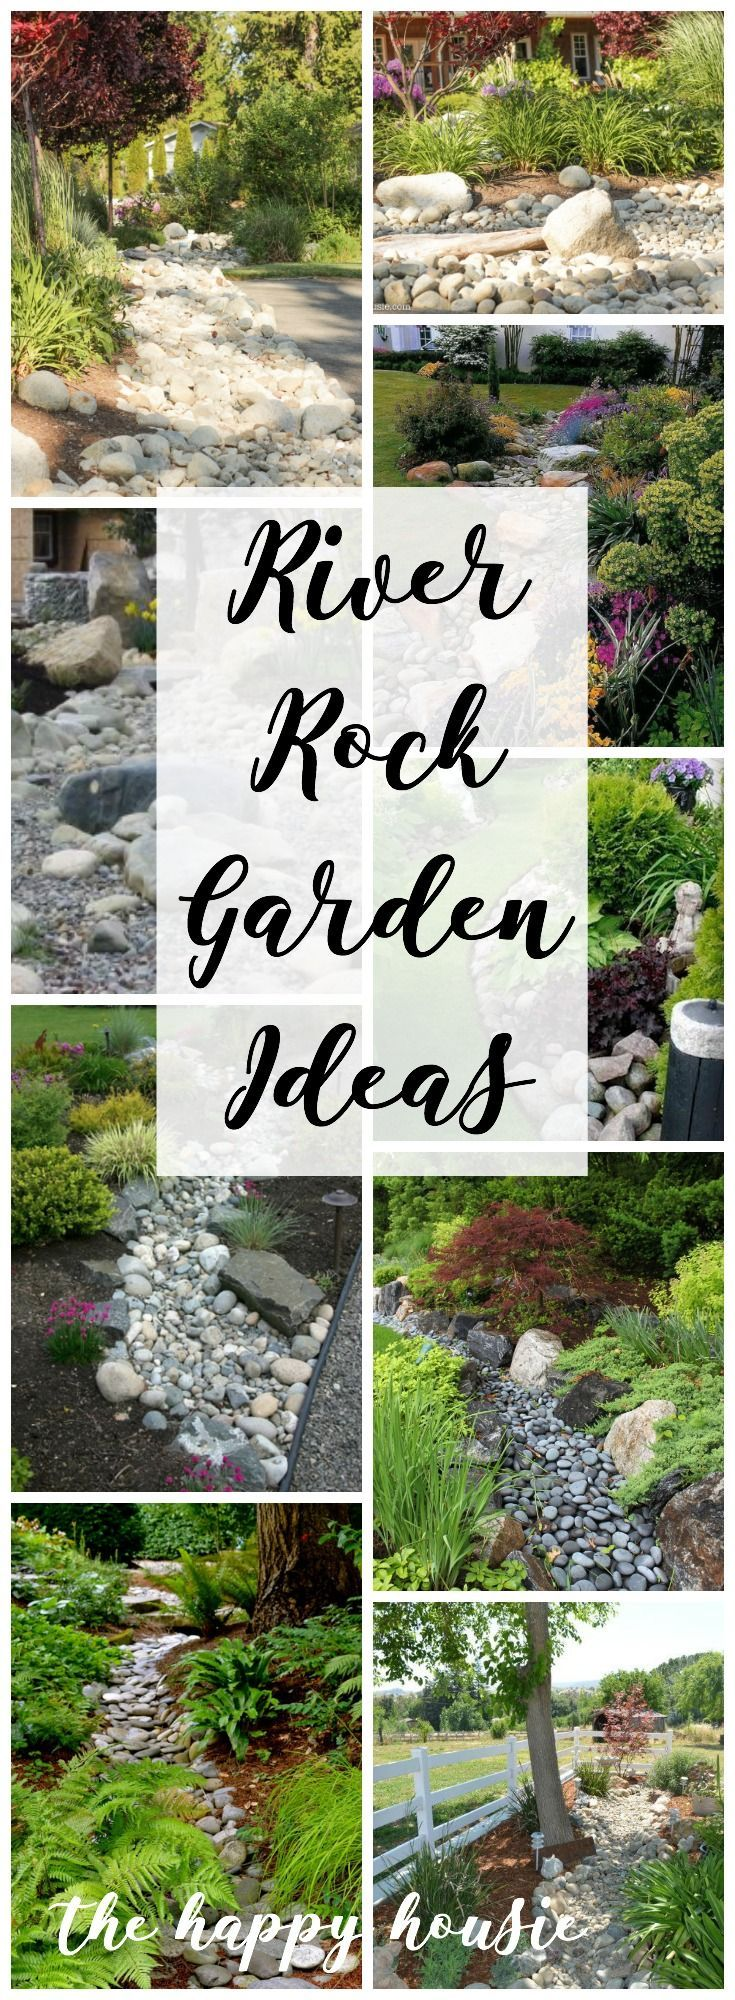 Landscaping with River Rock & Dry River Rock Garden Ideas - The Happy Housie